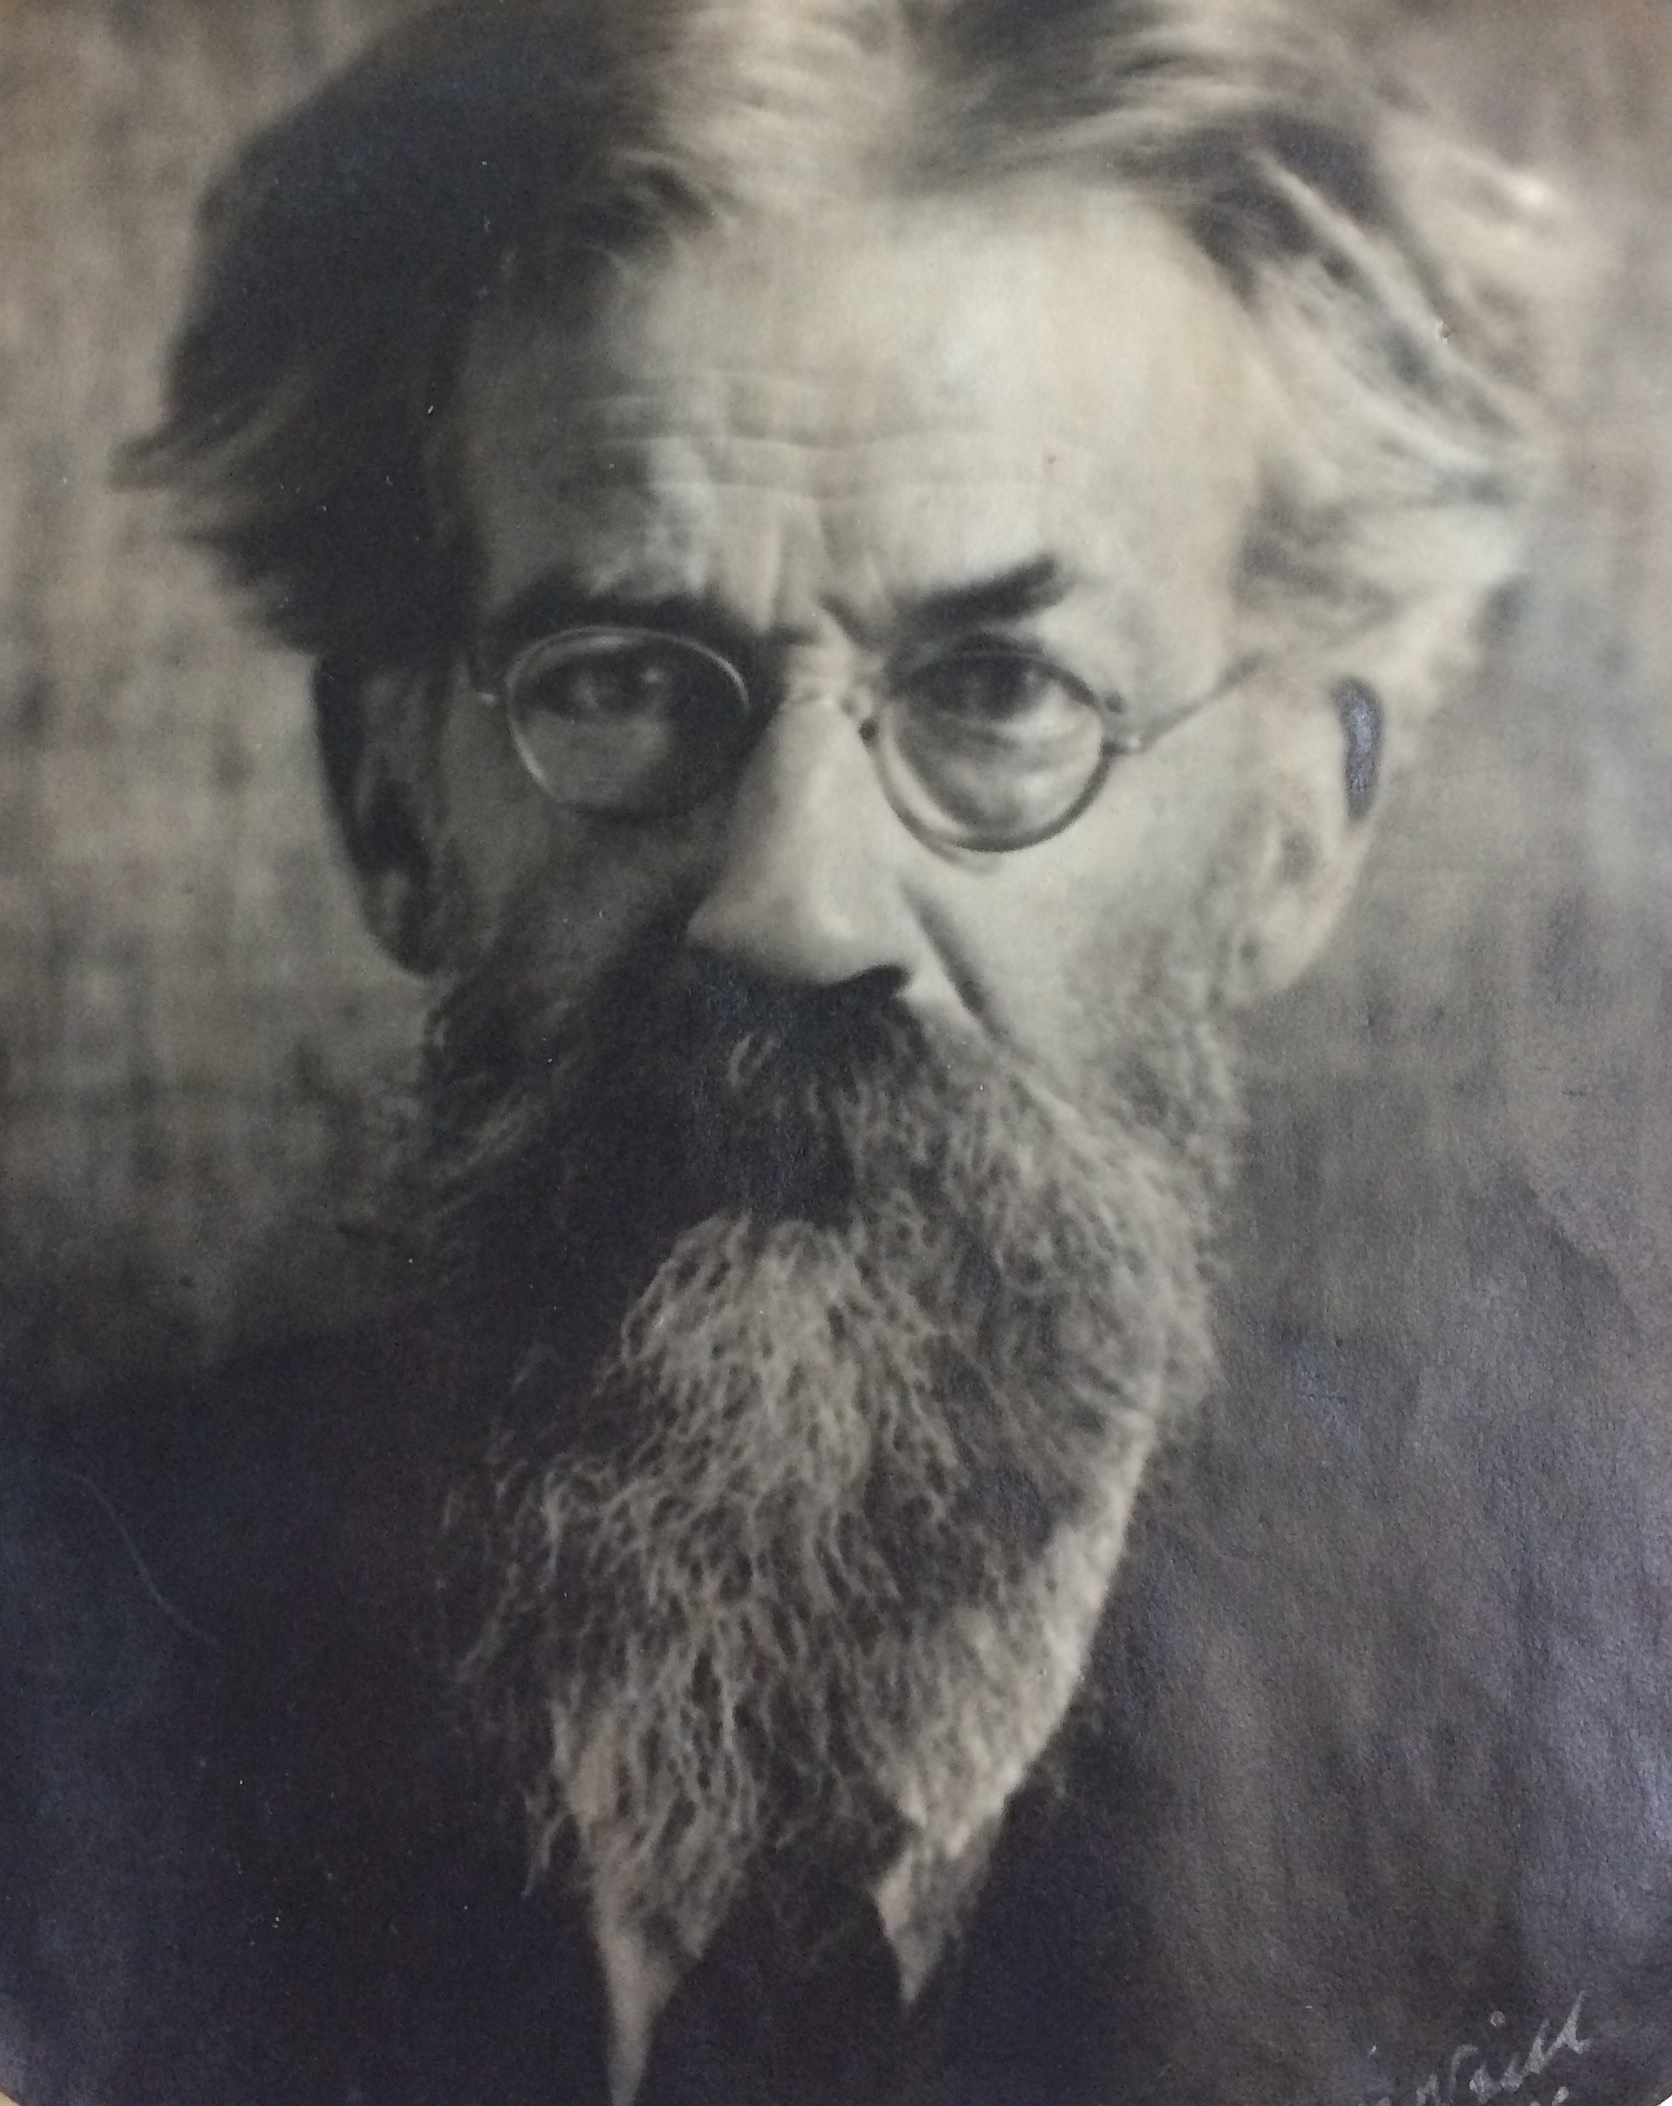 Photograph of Patrick Geddes, aged 71, c.1913 (Ref: Coll-1167/GFP)